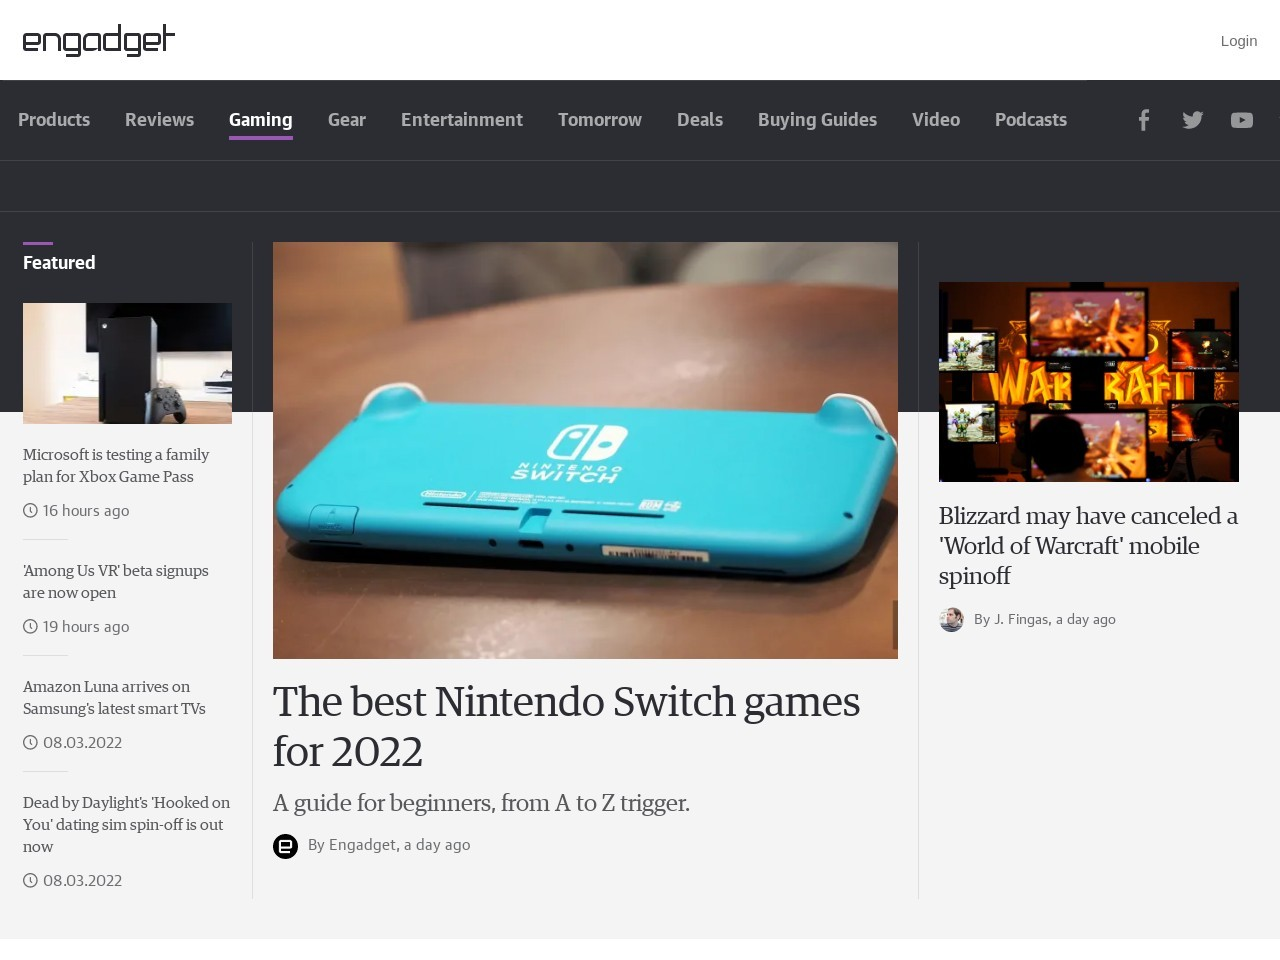 Bungie files trademark apps for Glimmer, Fallen, Hive, Cabal, Vex …